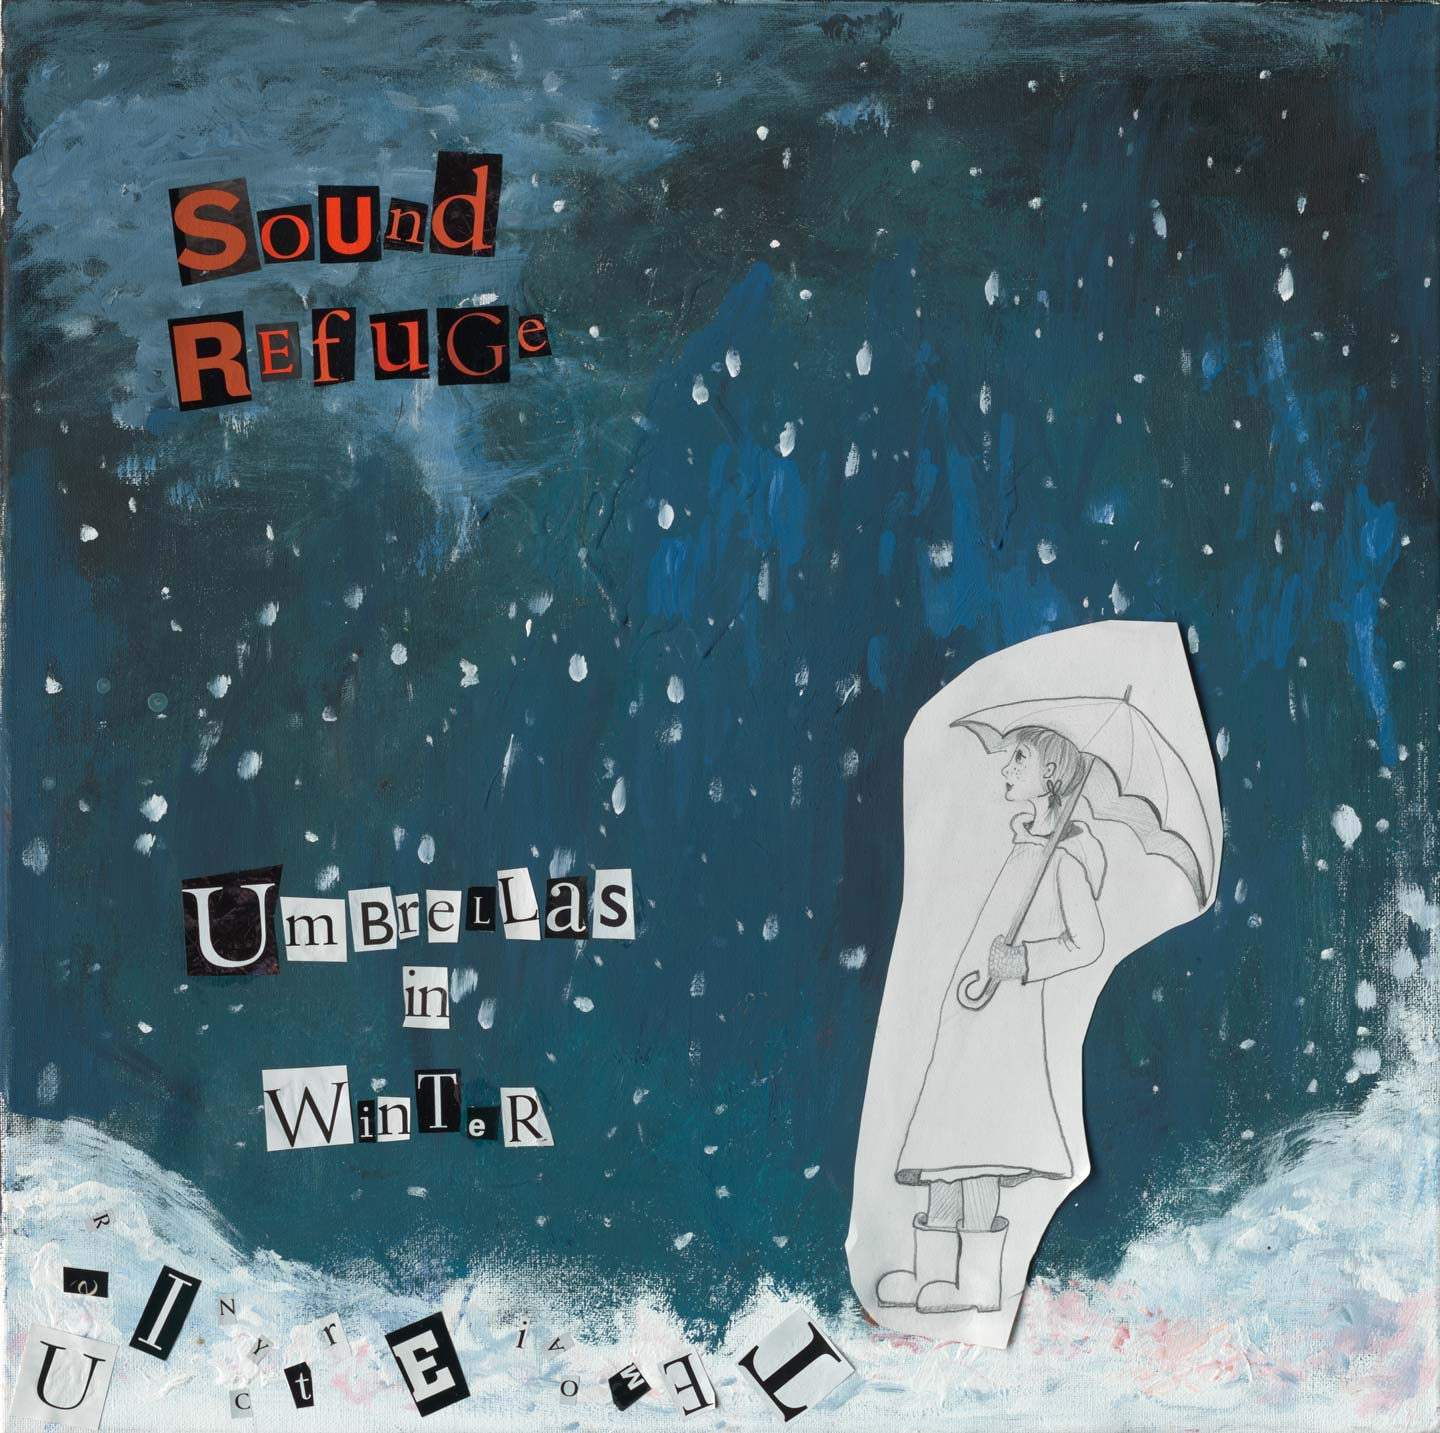 Umbrellas-in-Winter-CD